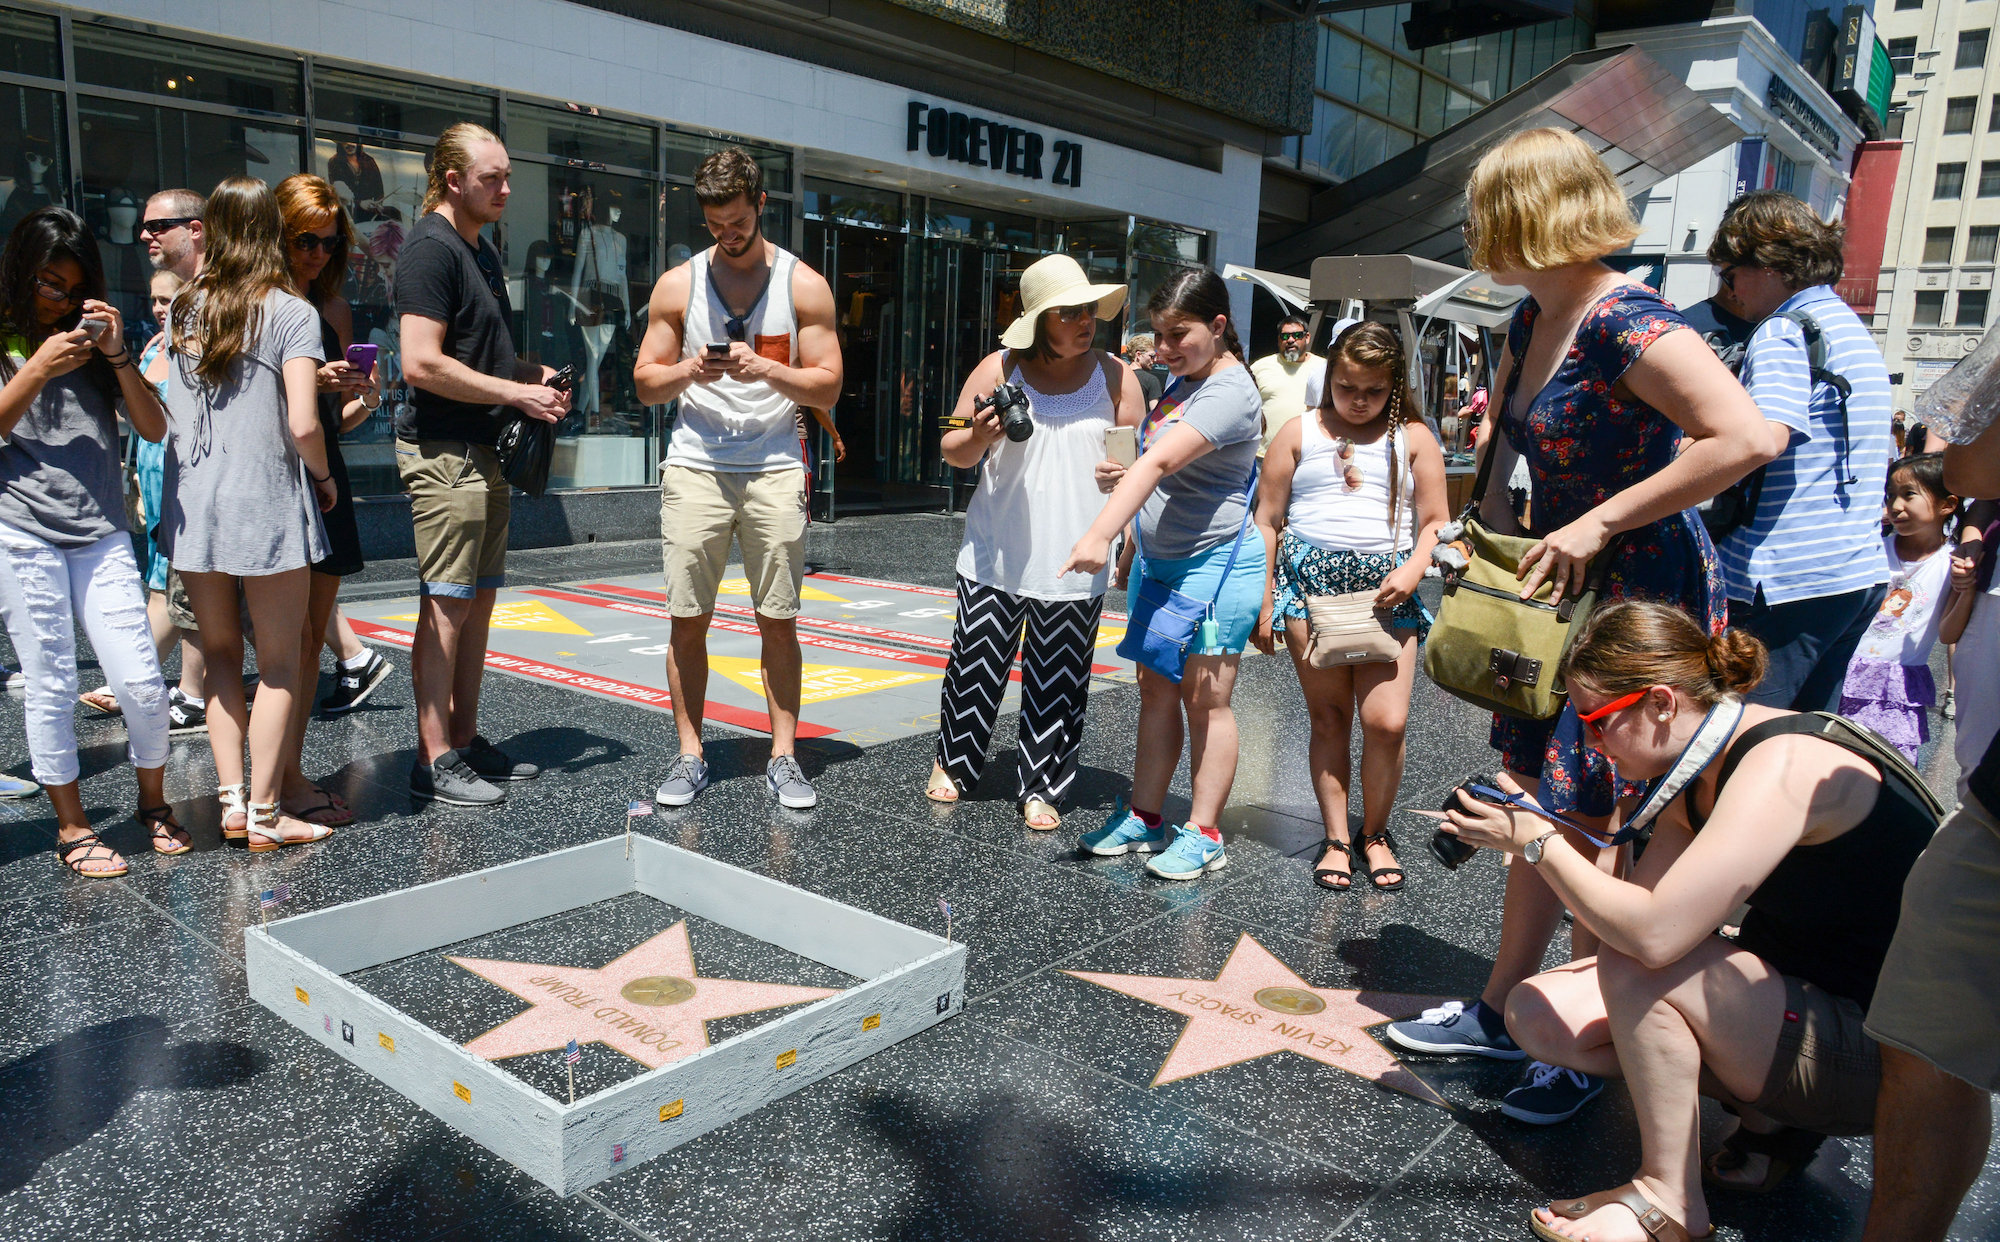 """Hollywood sightseeers on the famous walk of fame were confronted with an unusual edition to Trump's Famous Star. Someone had built a 6"""" tall grey concrete wall around it. Complete with """"Keep out"""" signs and topped with razor wire. The unofficial addtion to the iconic star appeared early Tuesday afternoon, to the amusement of onlookers. There was no word as to who created the humorous installation. However the miniture wall was adorned with """"STOP MAKING STUPID PEOPLE FAMOUS"""" which is believed to be the work of LA Street artist Plastic Jesus."""